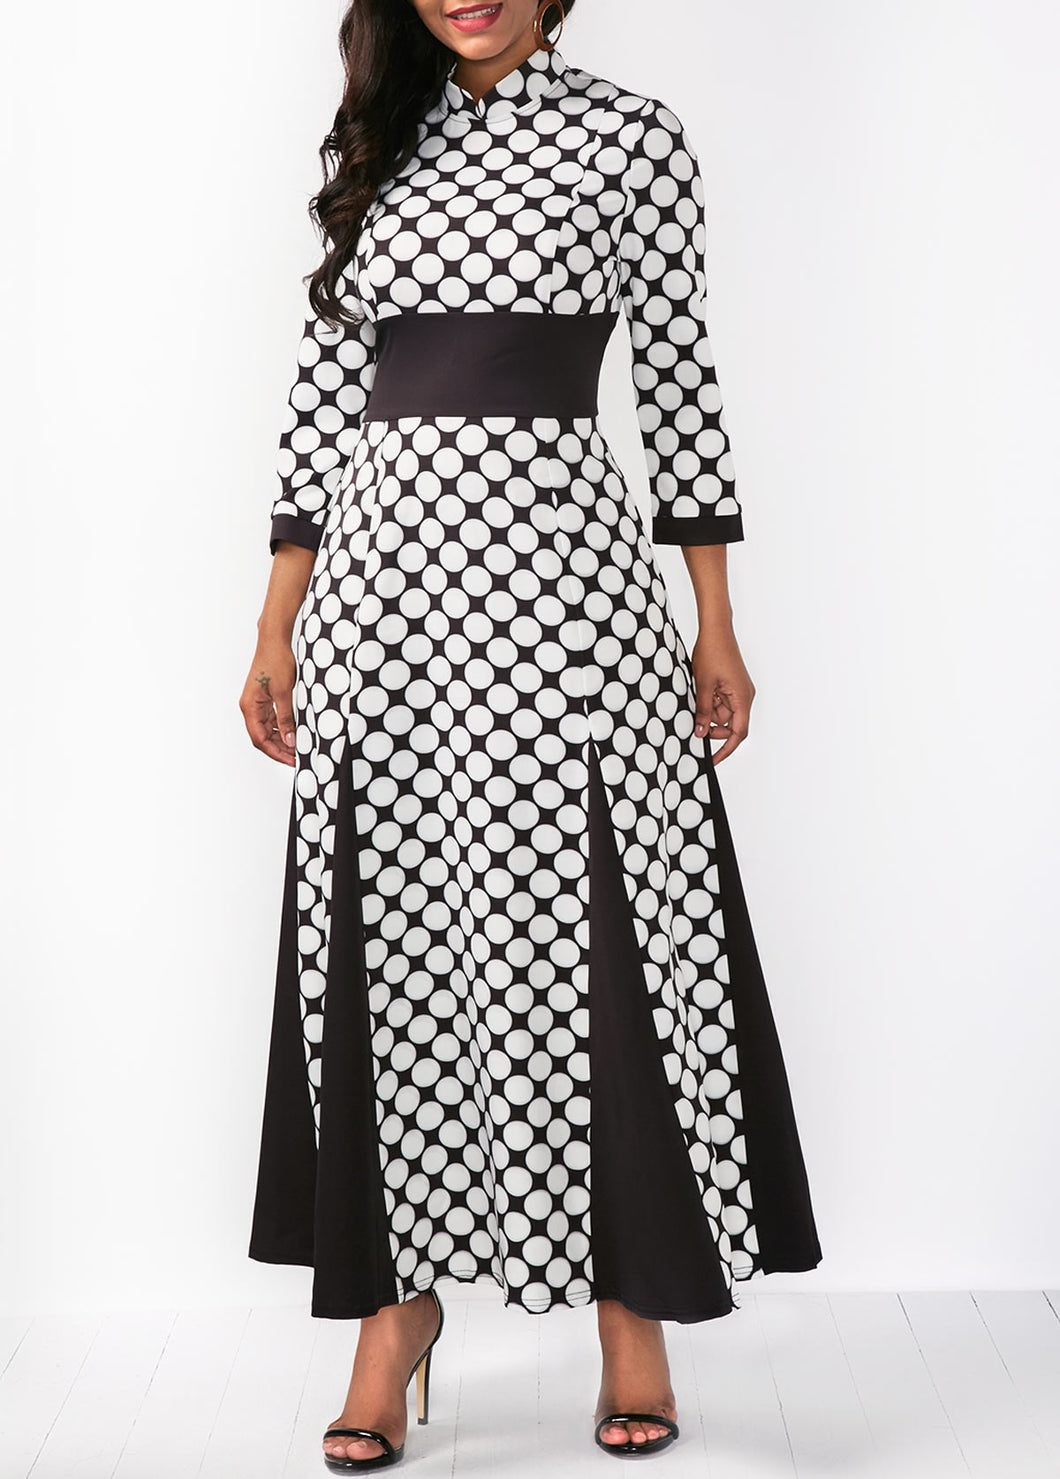 Fashion Lapel Check Printed Belted Evening Dress